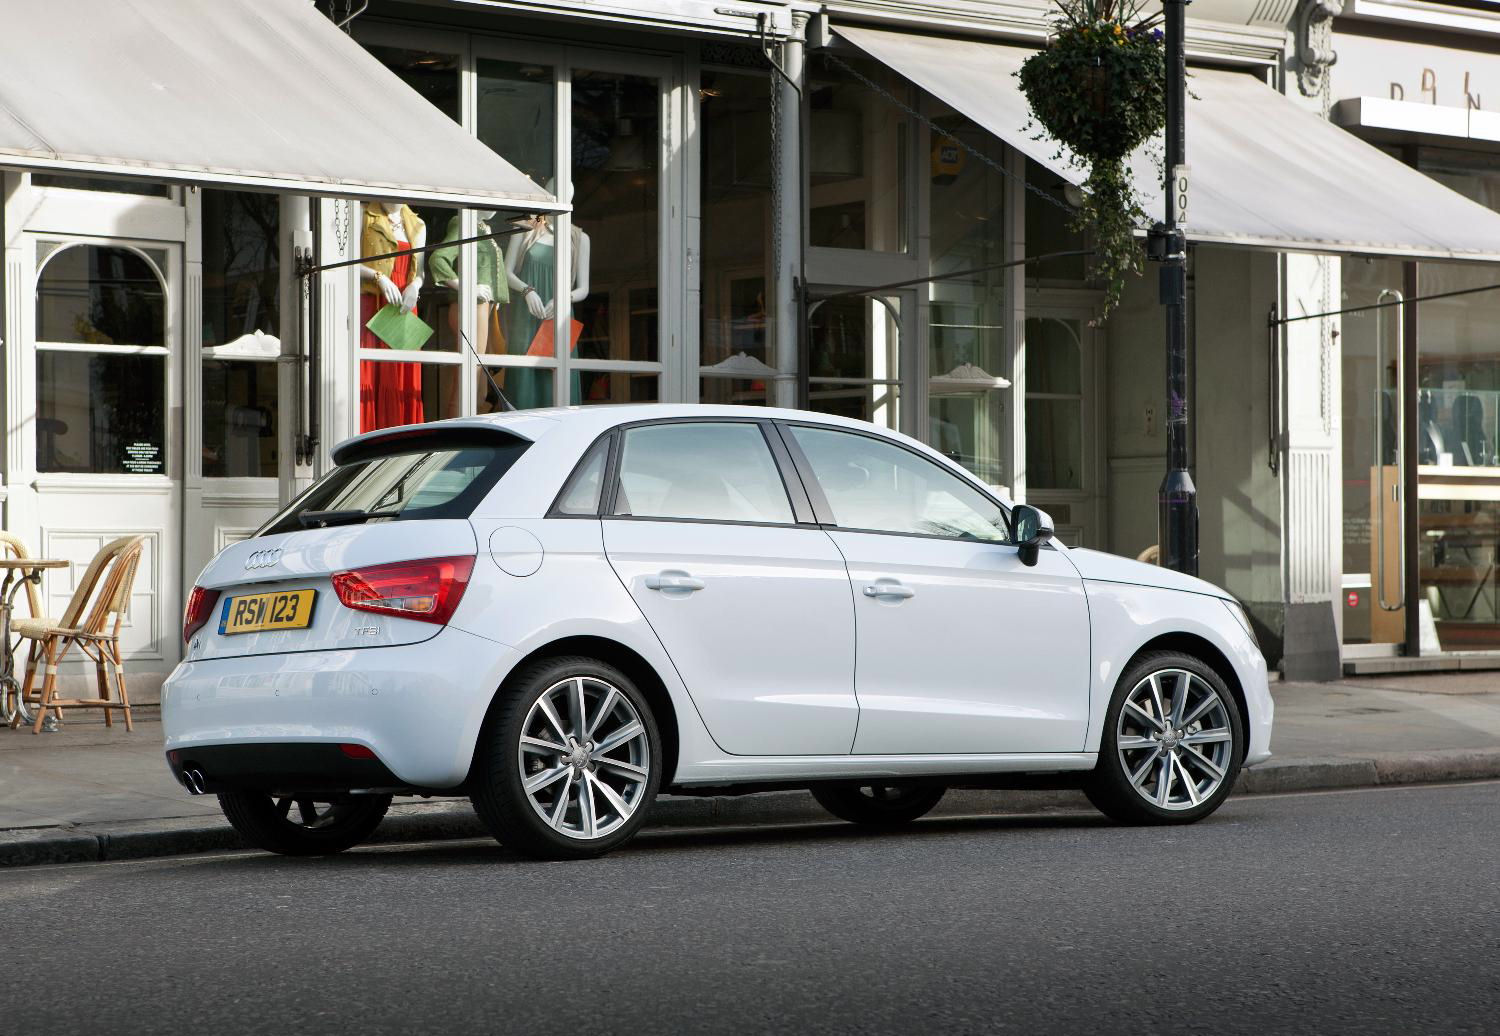 Used Audi A1 >> Audi A1 Sportback 1.4 TFSI Sport S tronic First Drive ...